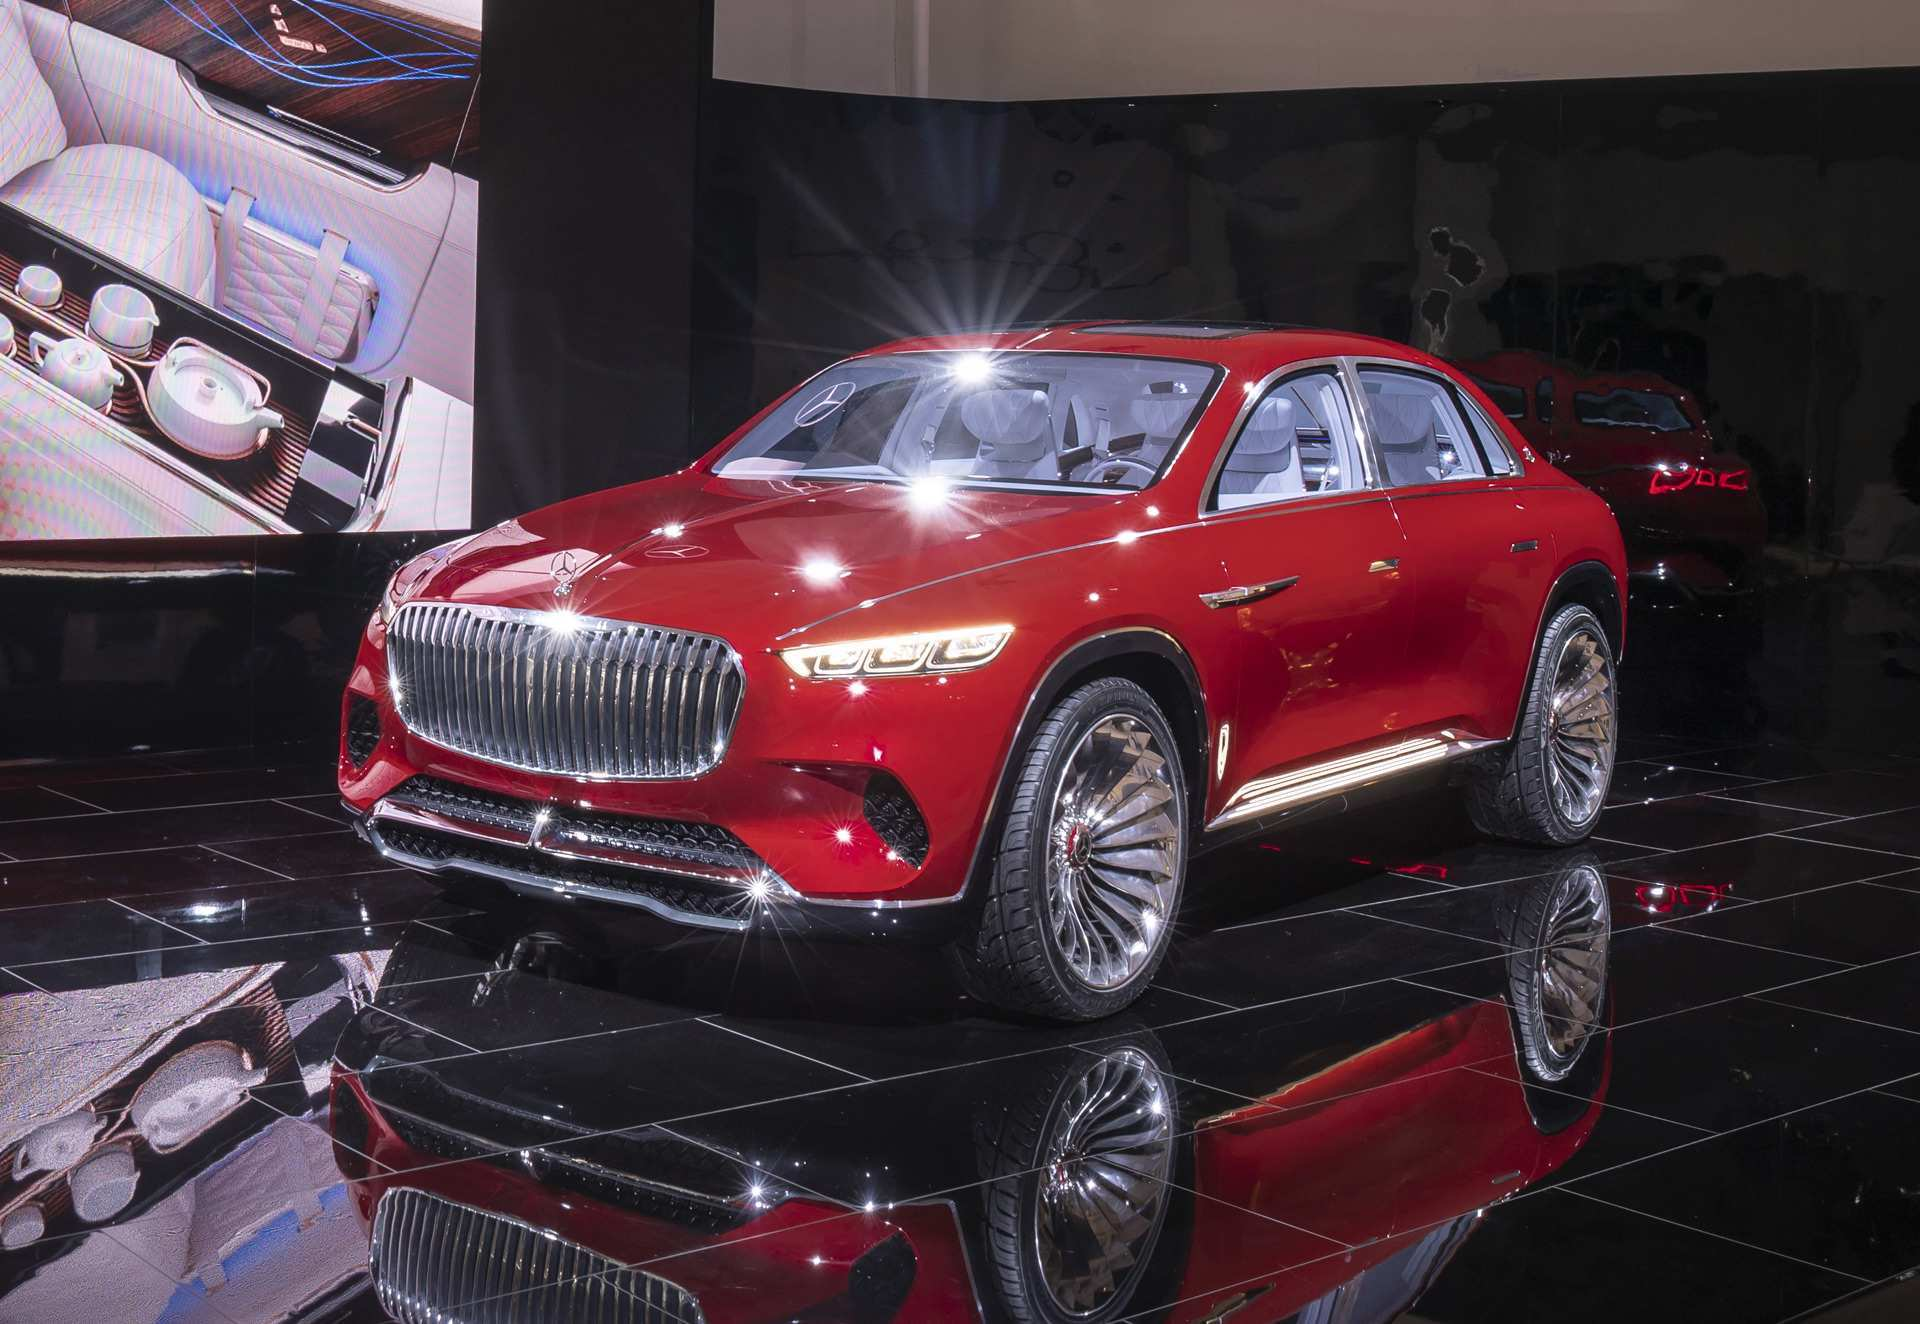 19 New Mercedes Maybach Suv 2019 Photos with Mercedes Maybach Suv 2019